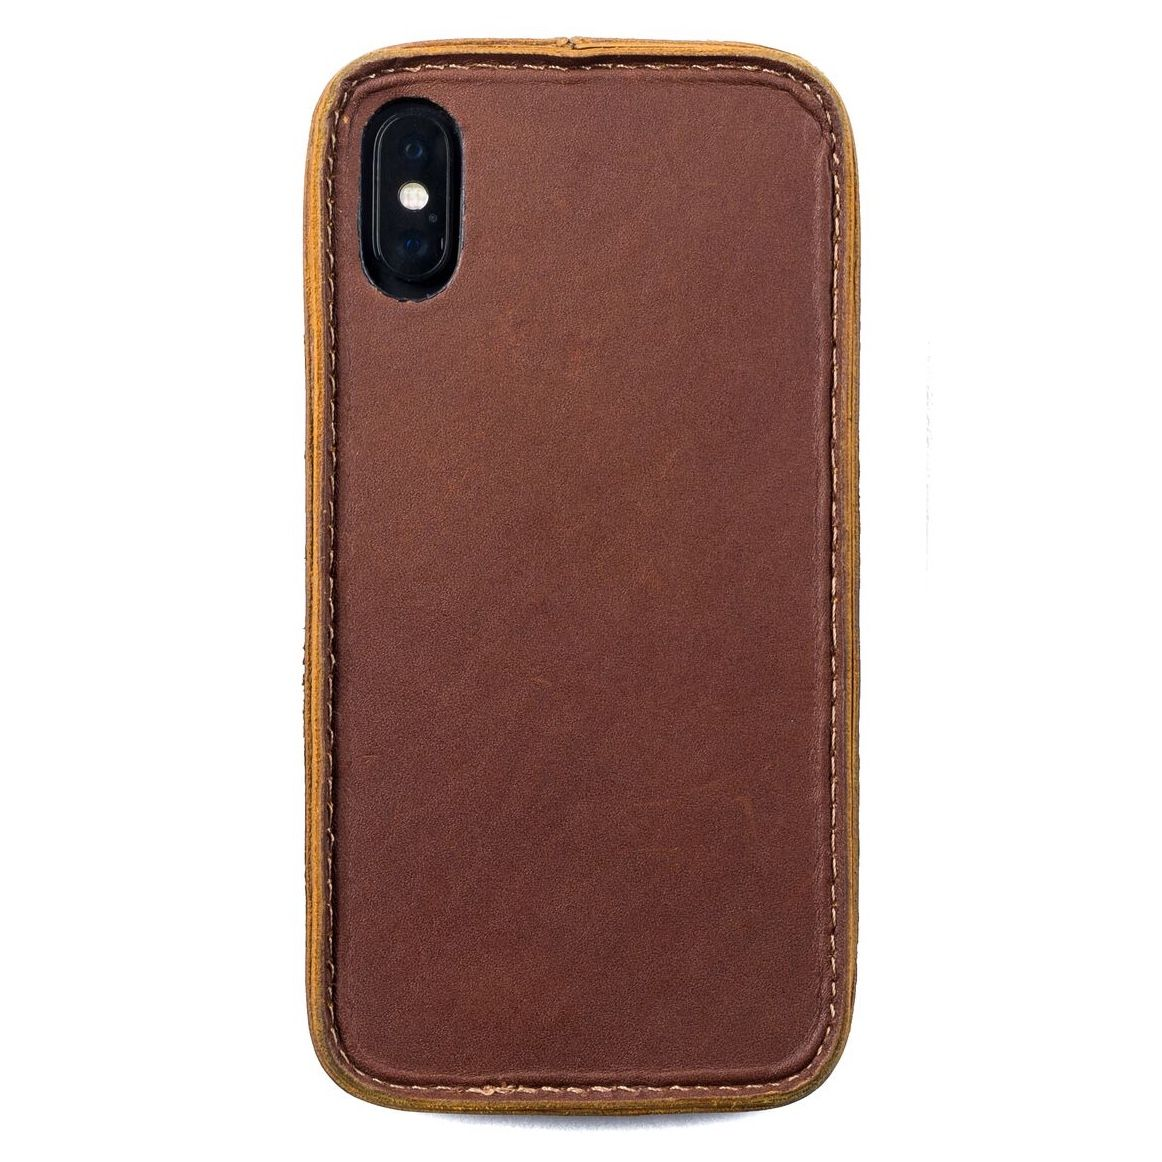 Pad & Quill Traveler Leather Bumper Case